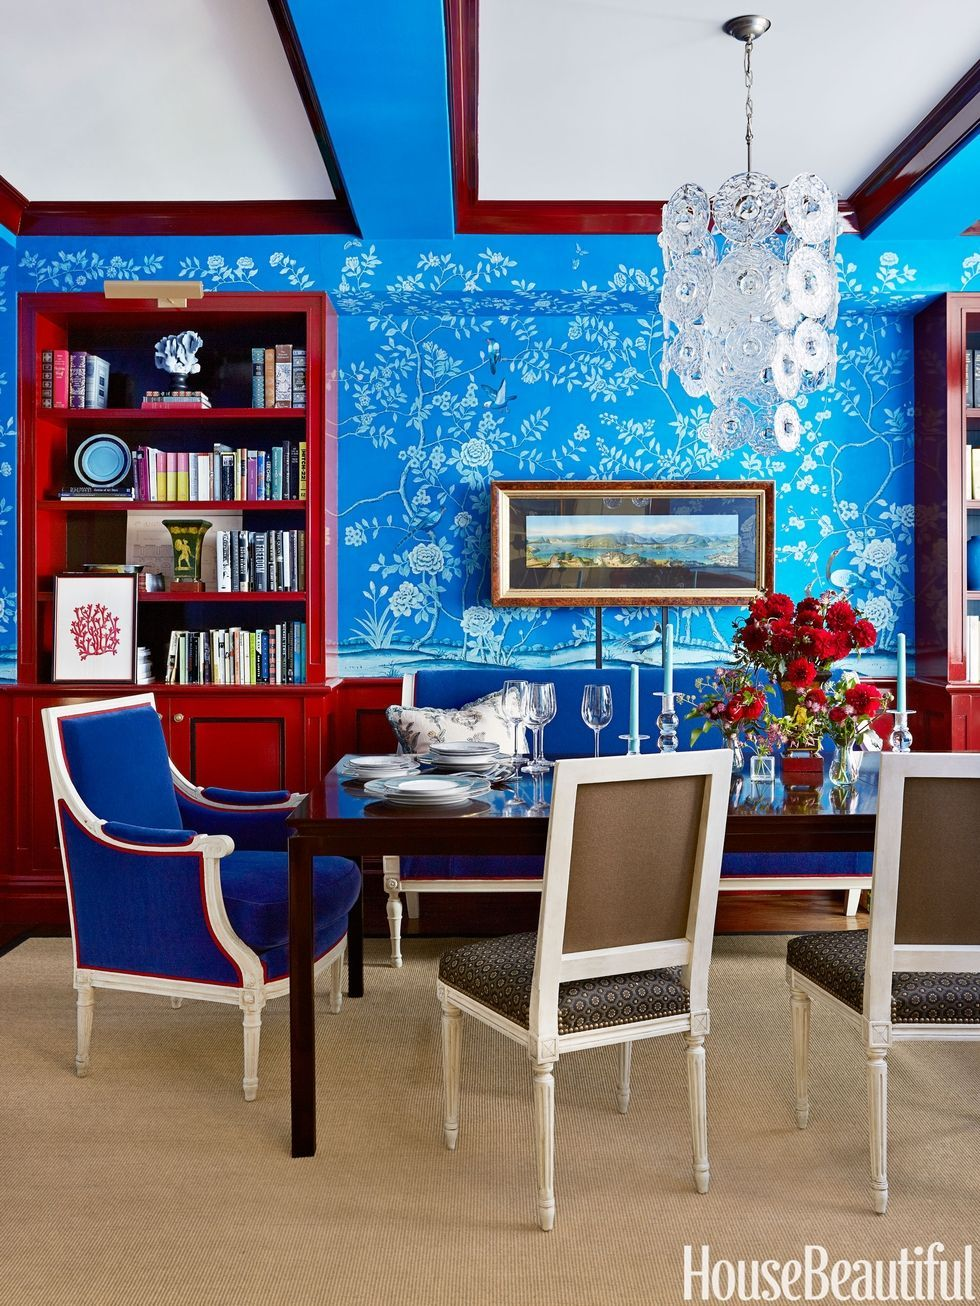 Lovely Dining Room Pinterest Room And Interiors # Daquino Muebles